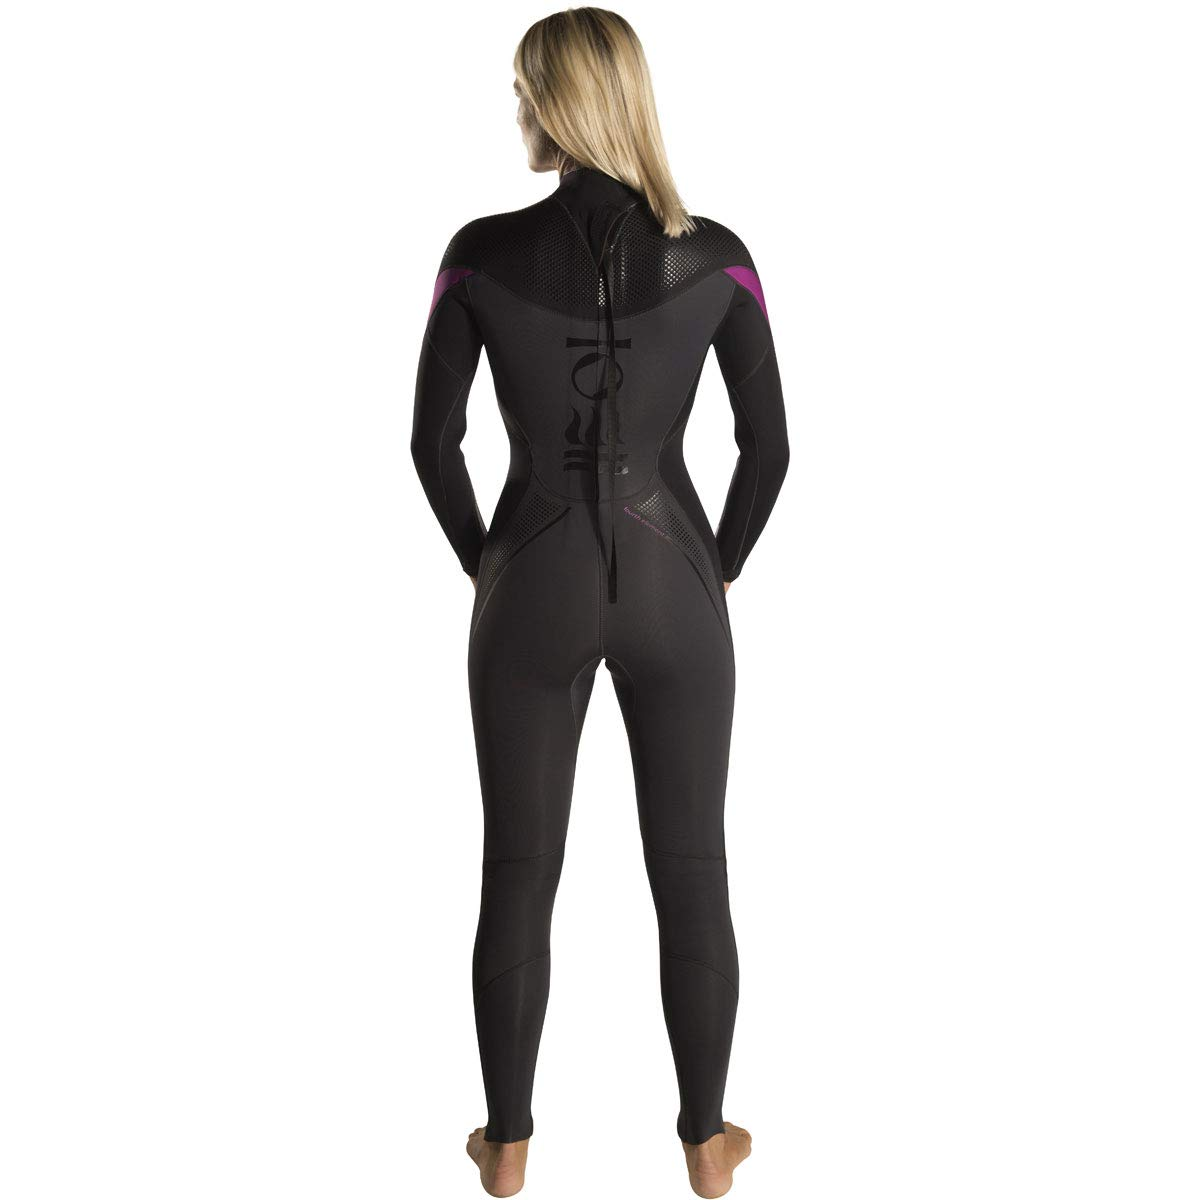 6e5eaf69f7 Amazon.com  Fourth Element Xenos 3mm Women s Jumpsuit